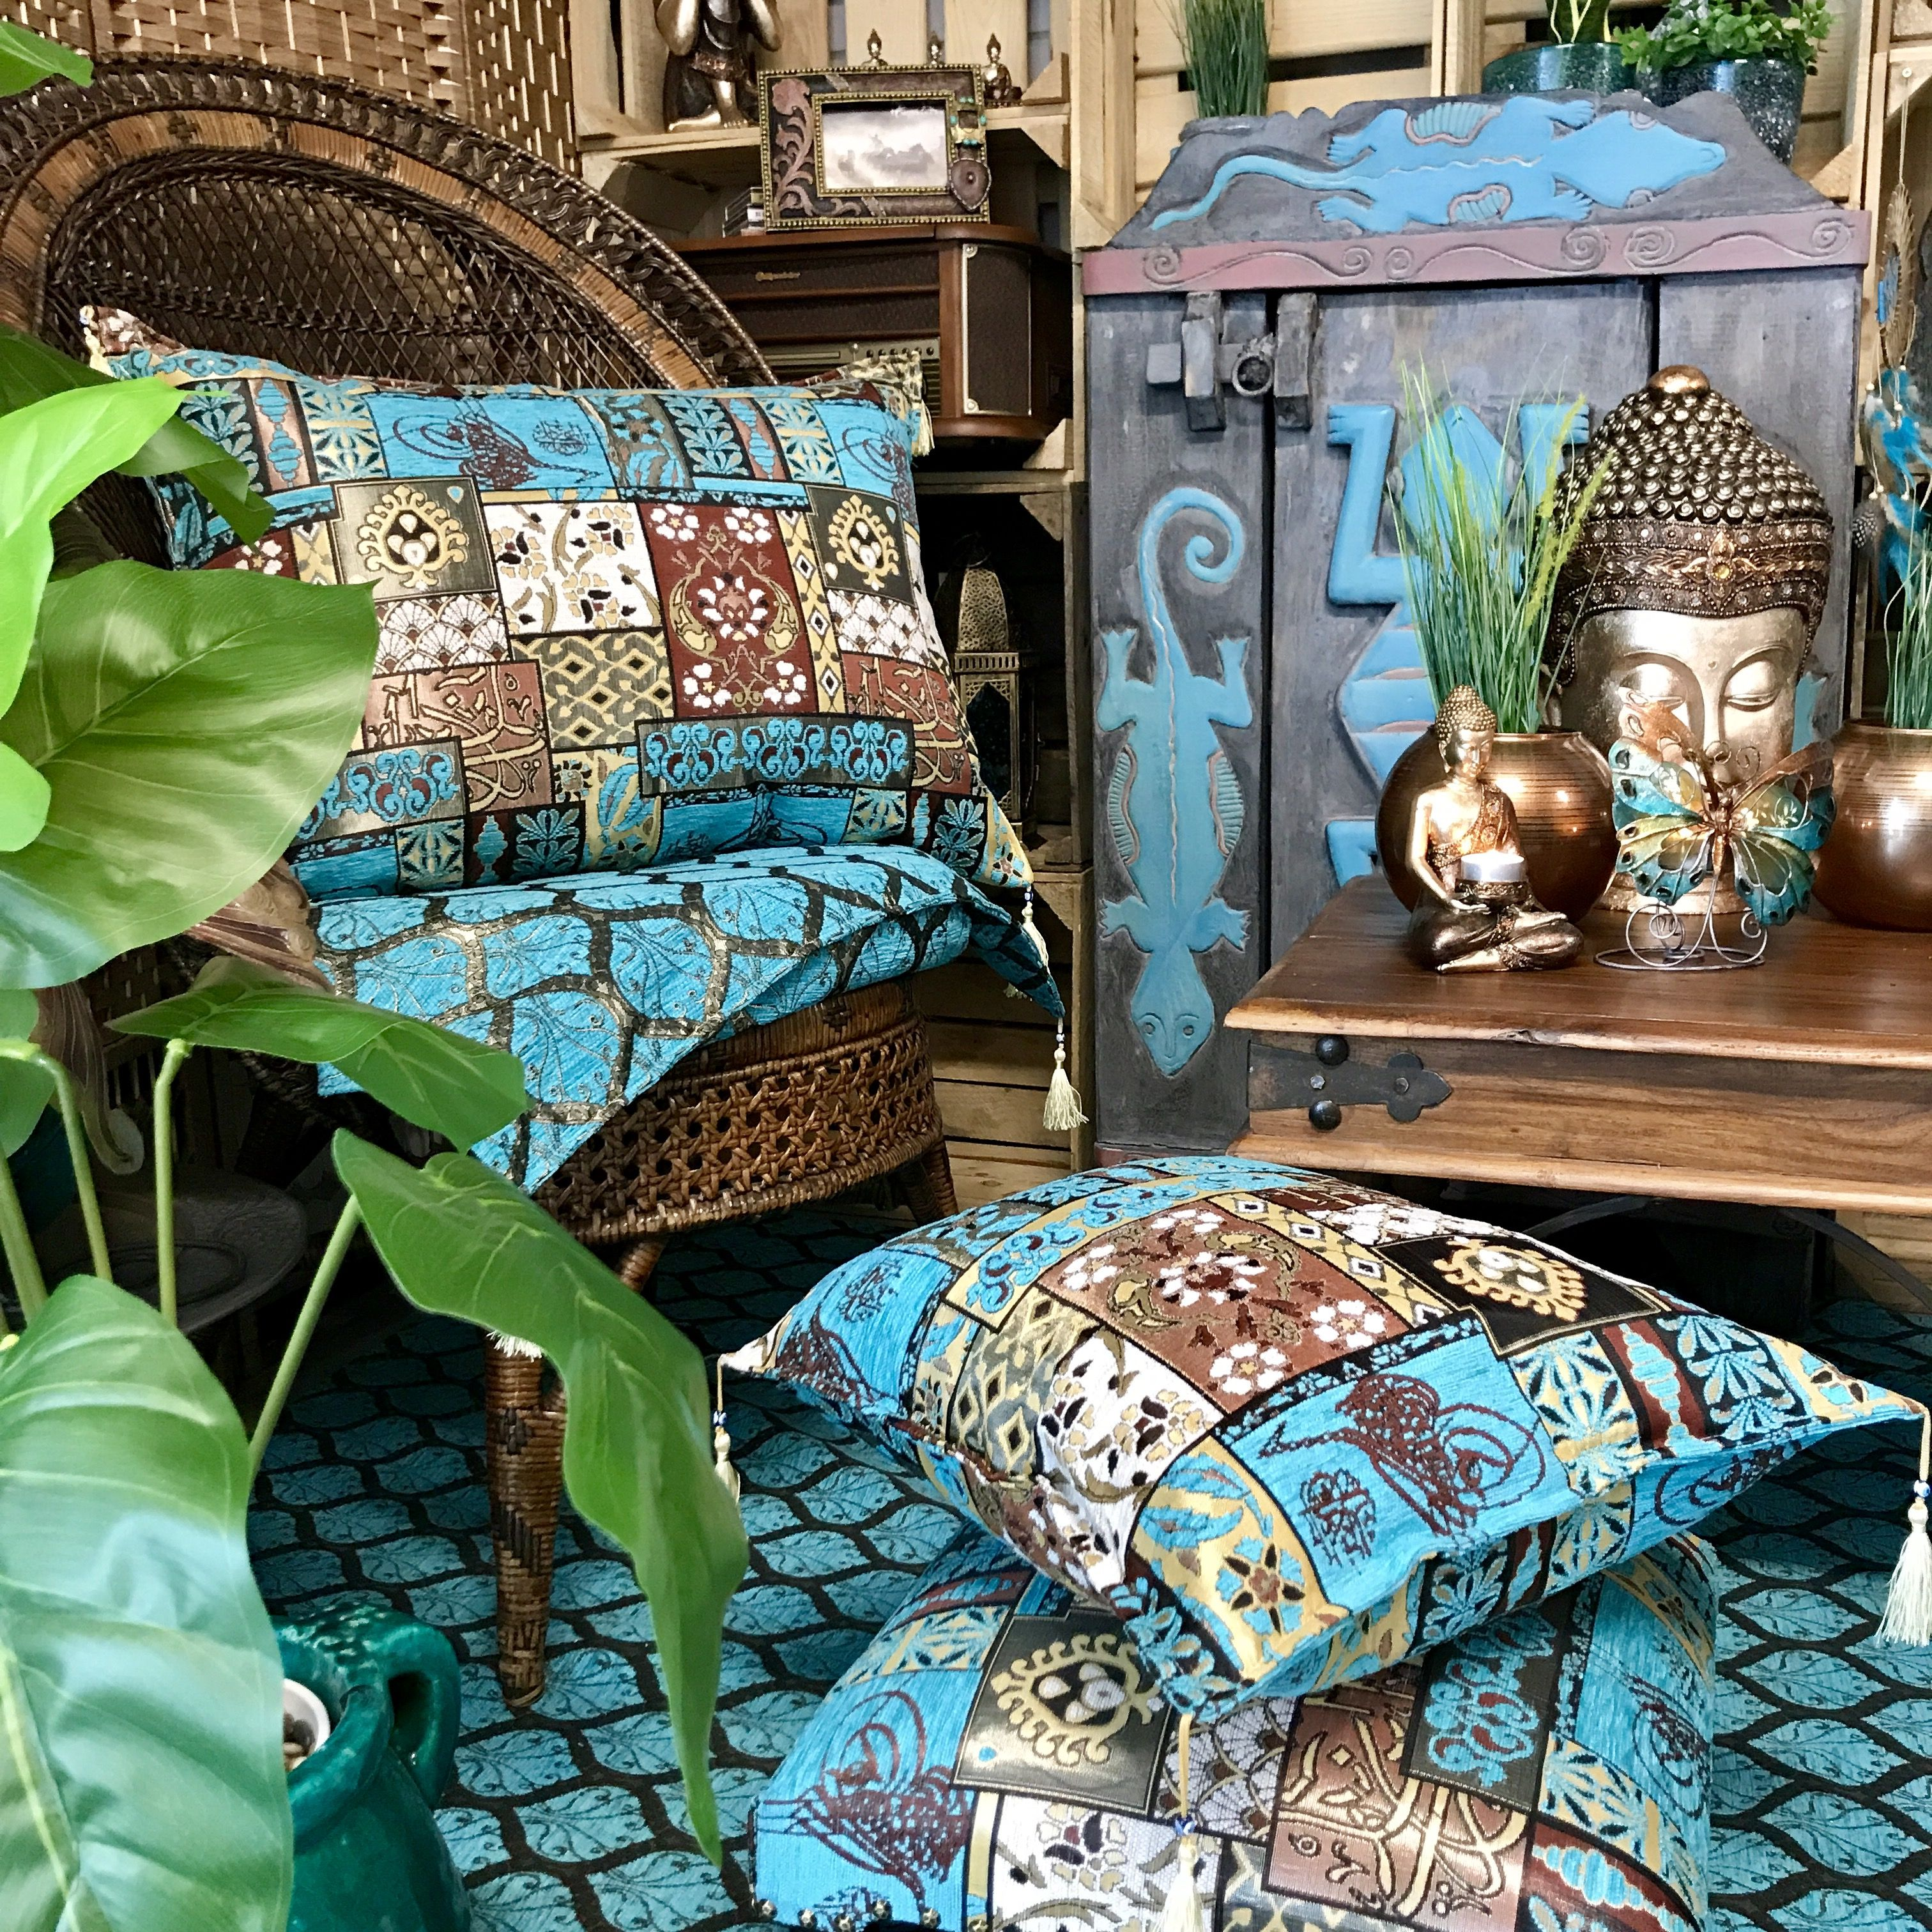 on pool gallery simple in gypsy patio nice decor with design ideas tampa furniture decorating home